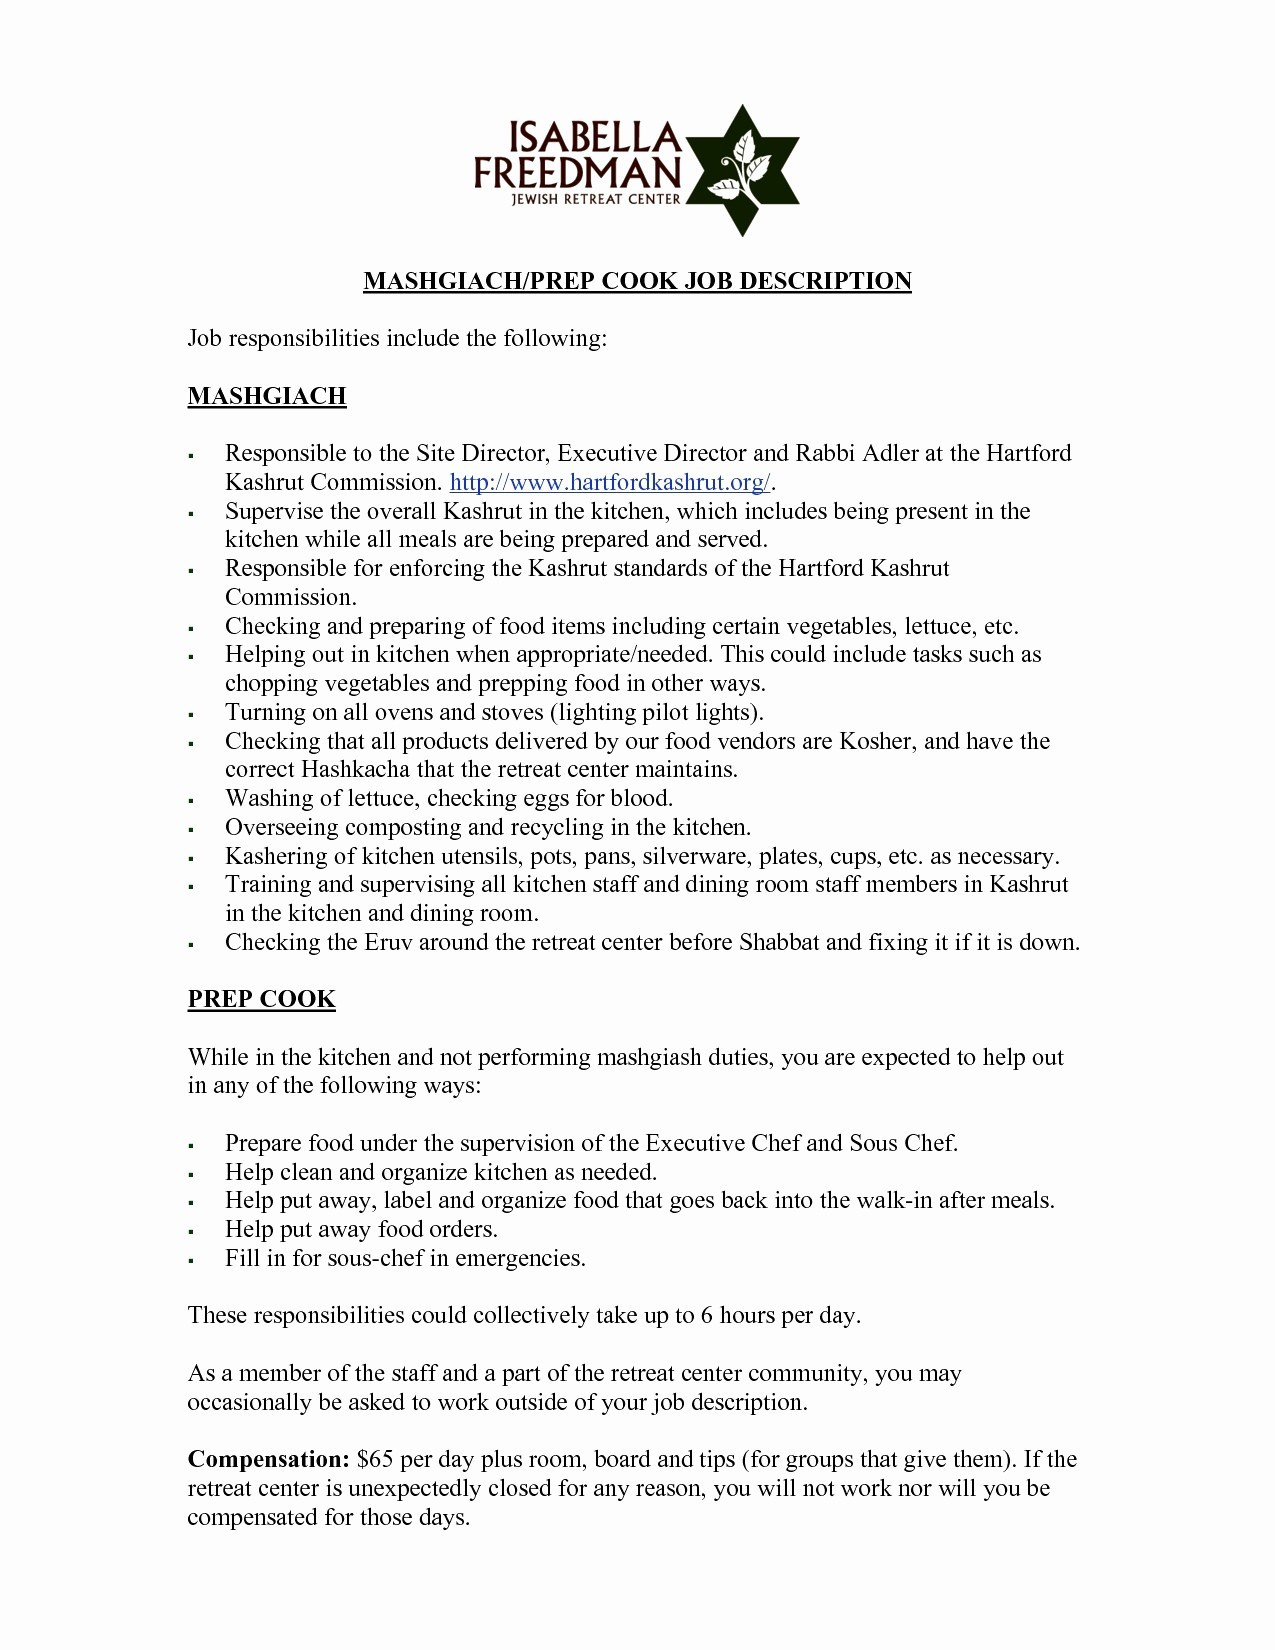 Dental assistant Resume Template Free - Dental assistant Resume Templates Best 25 assistant Resume